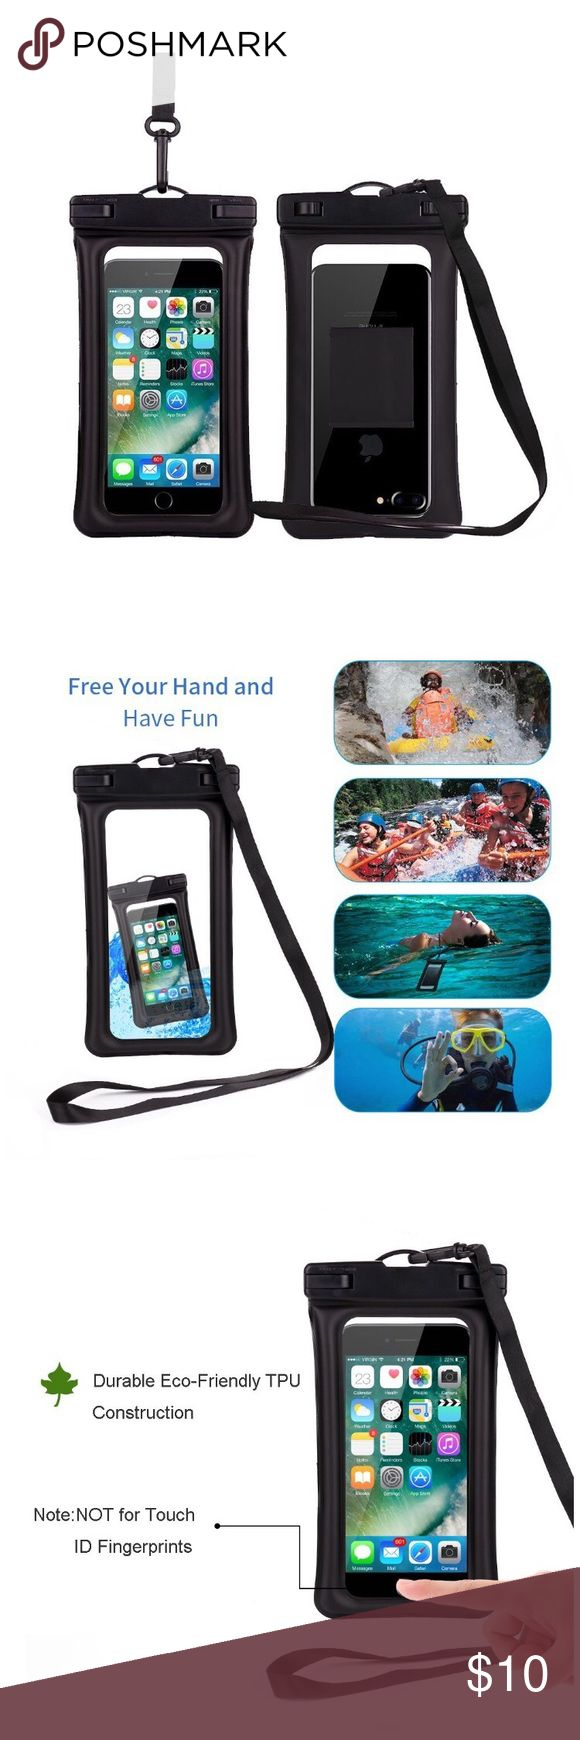 Waterproof Phone Case for iPhone 8 8plus 7 7plus Waterproof Case, Universal Waterproof Cell Phone Case Dry Bag Pouch With for iPhone 8 8plus 7 7plus 6S 6 6S Plus, Samsung Galaxy S8 S7 S6 ,Armband,Lanyard-Black Accessories Phone Cases